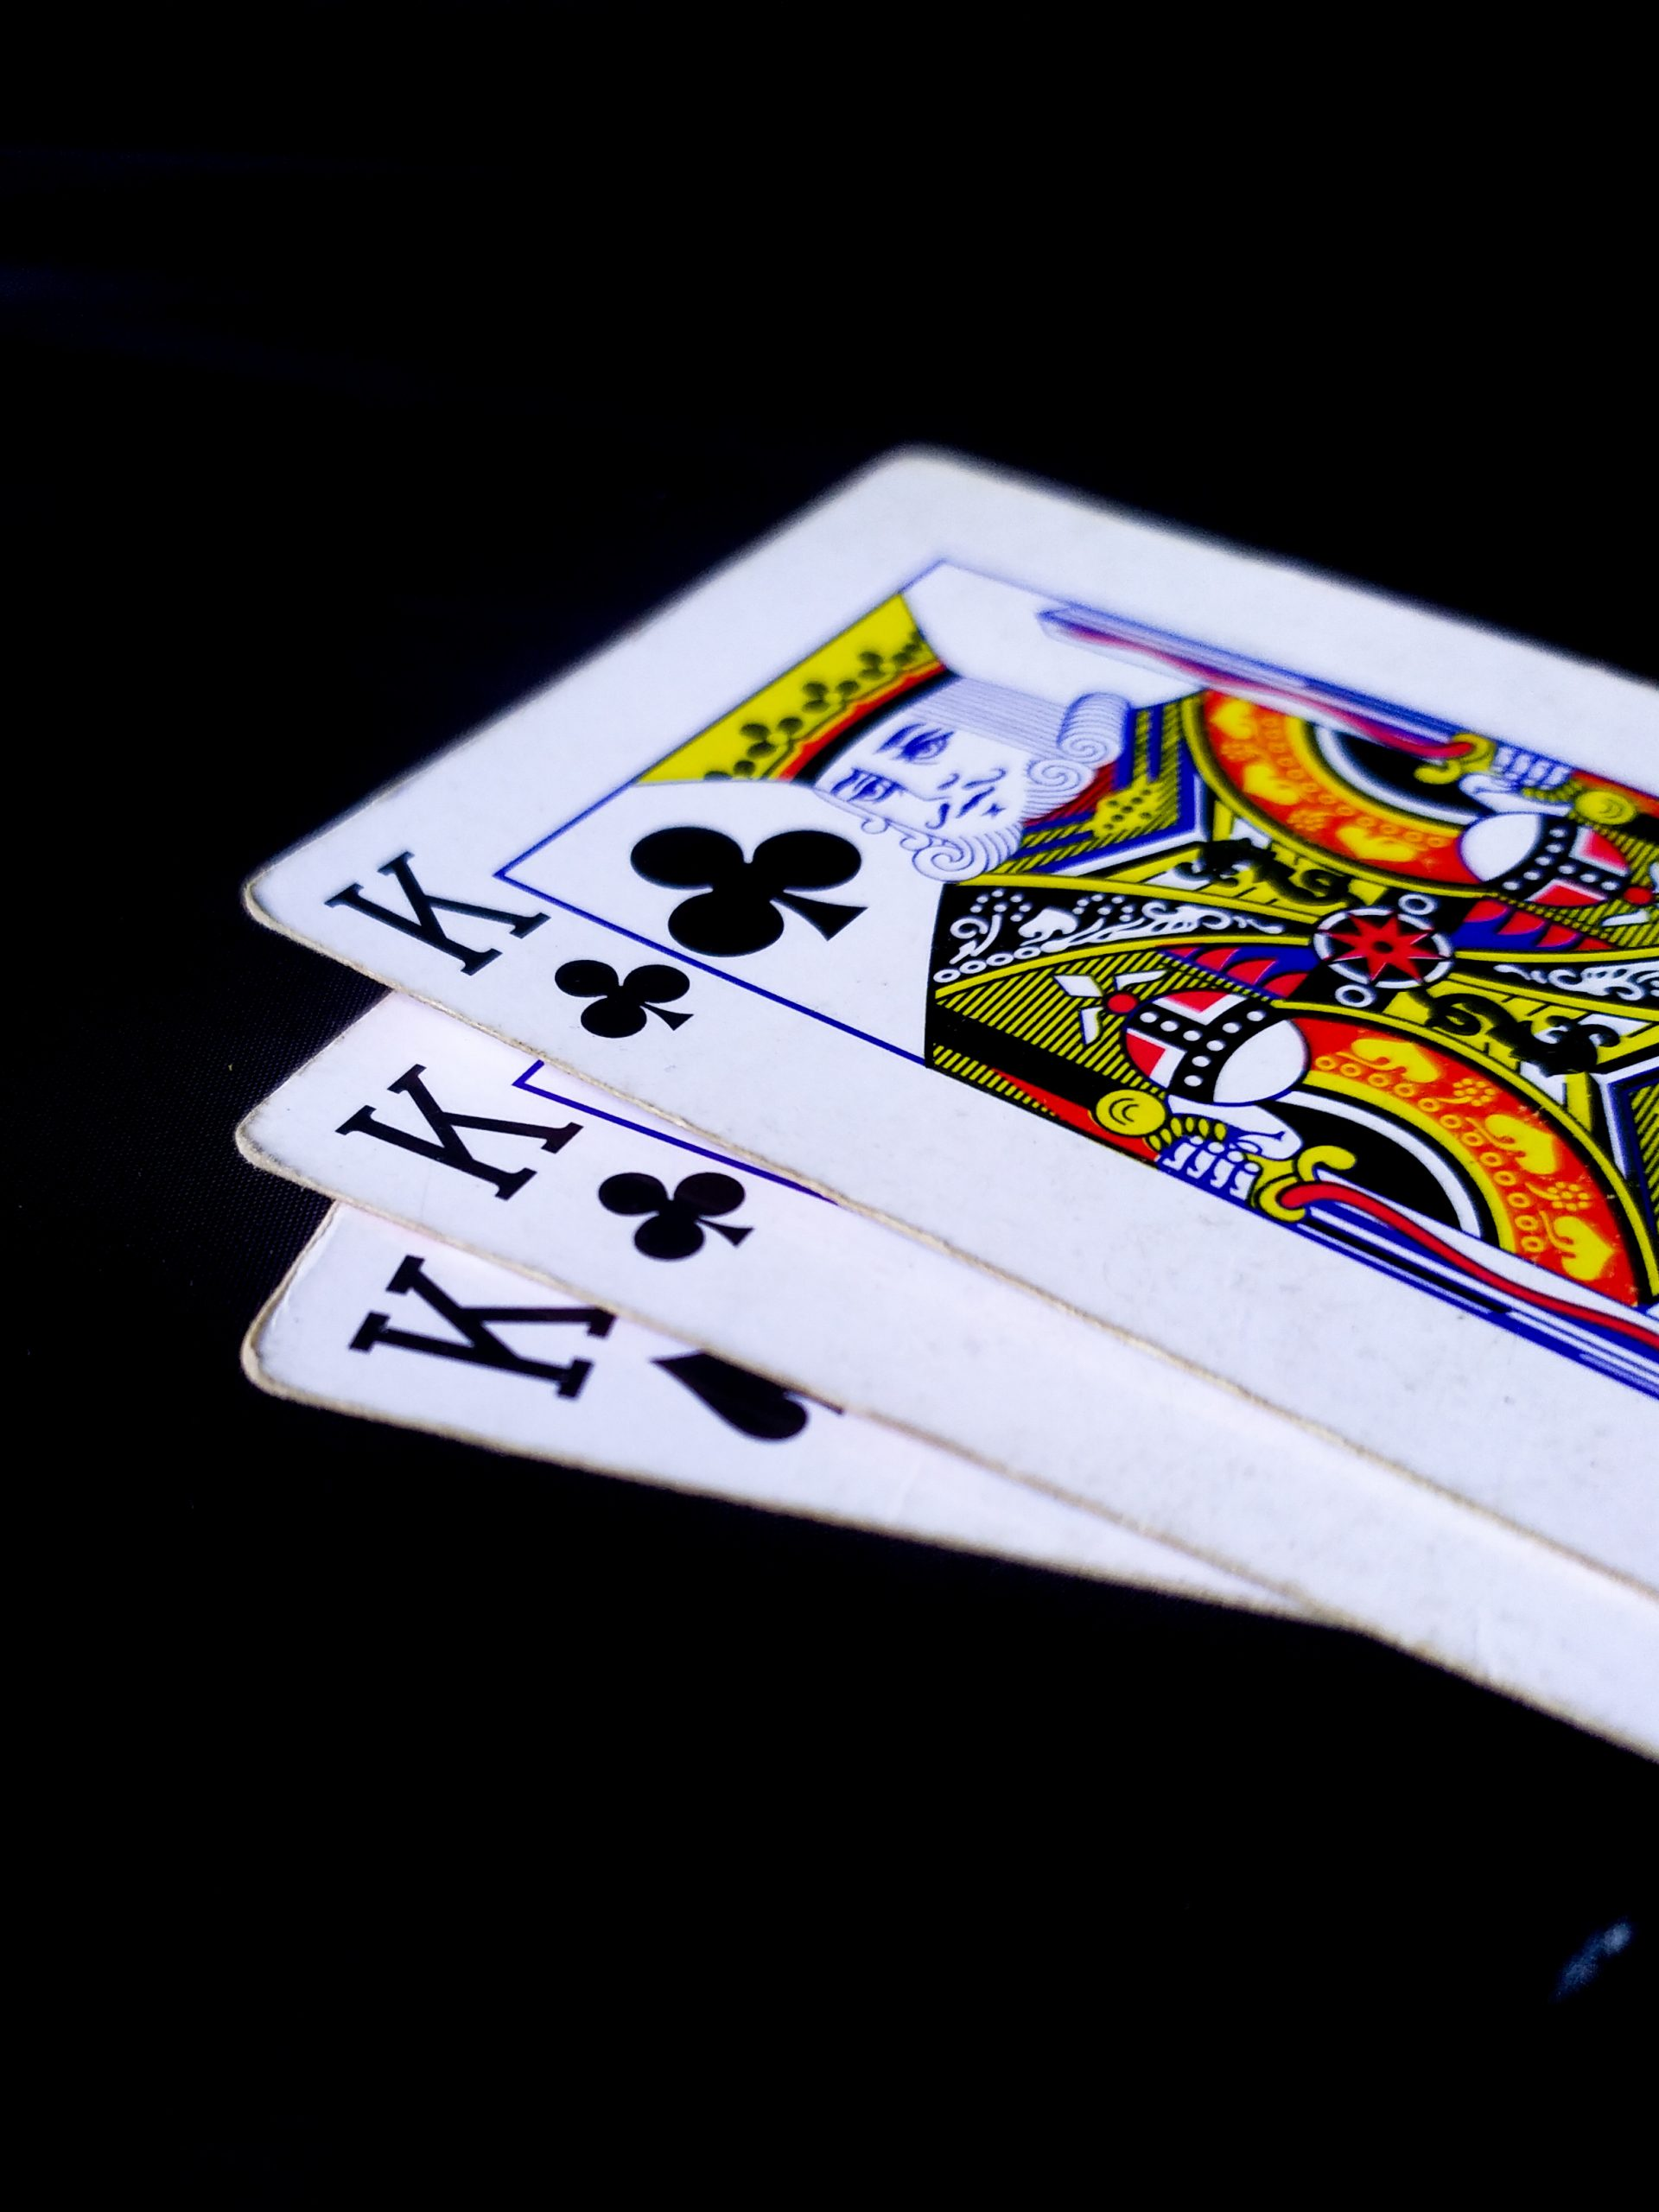 Three kings of playing cards